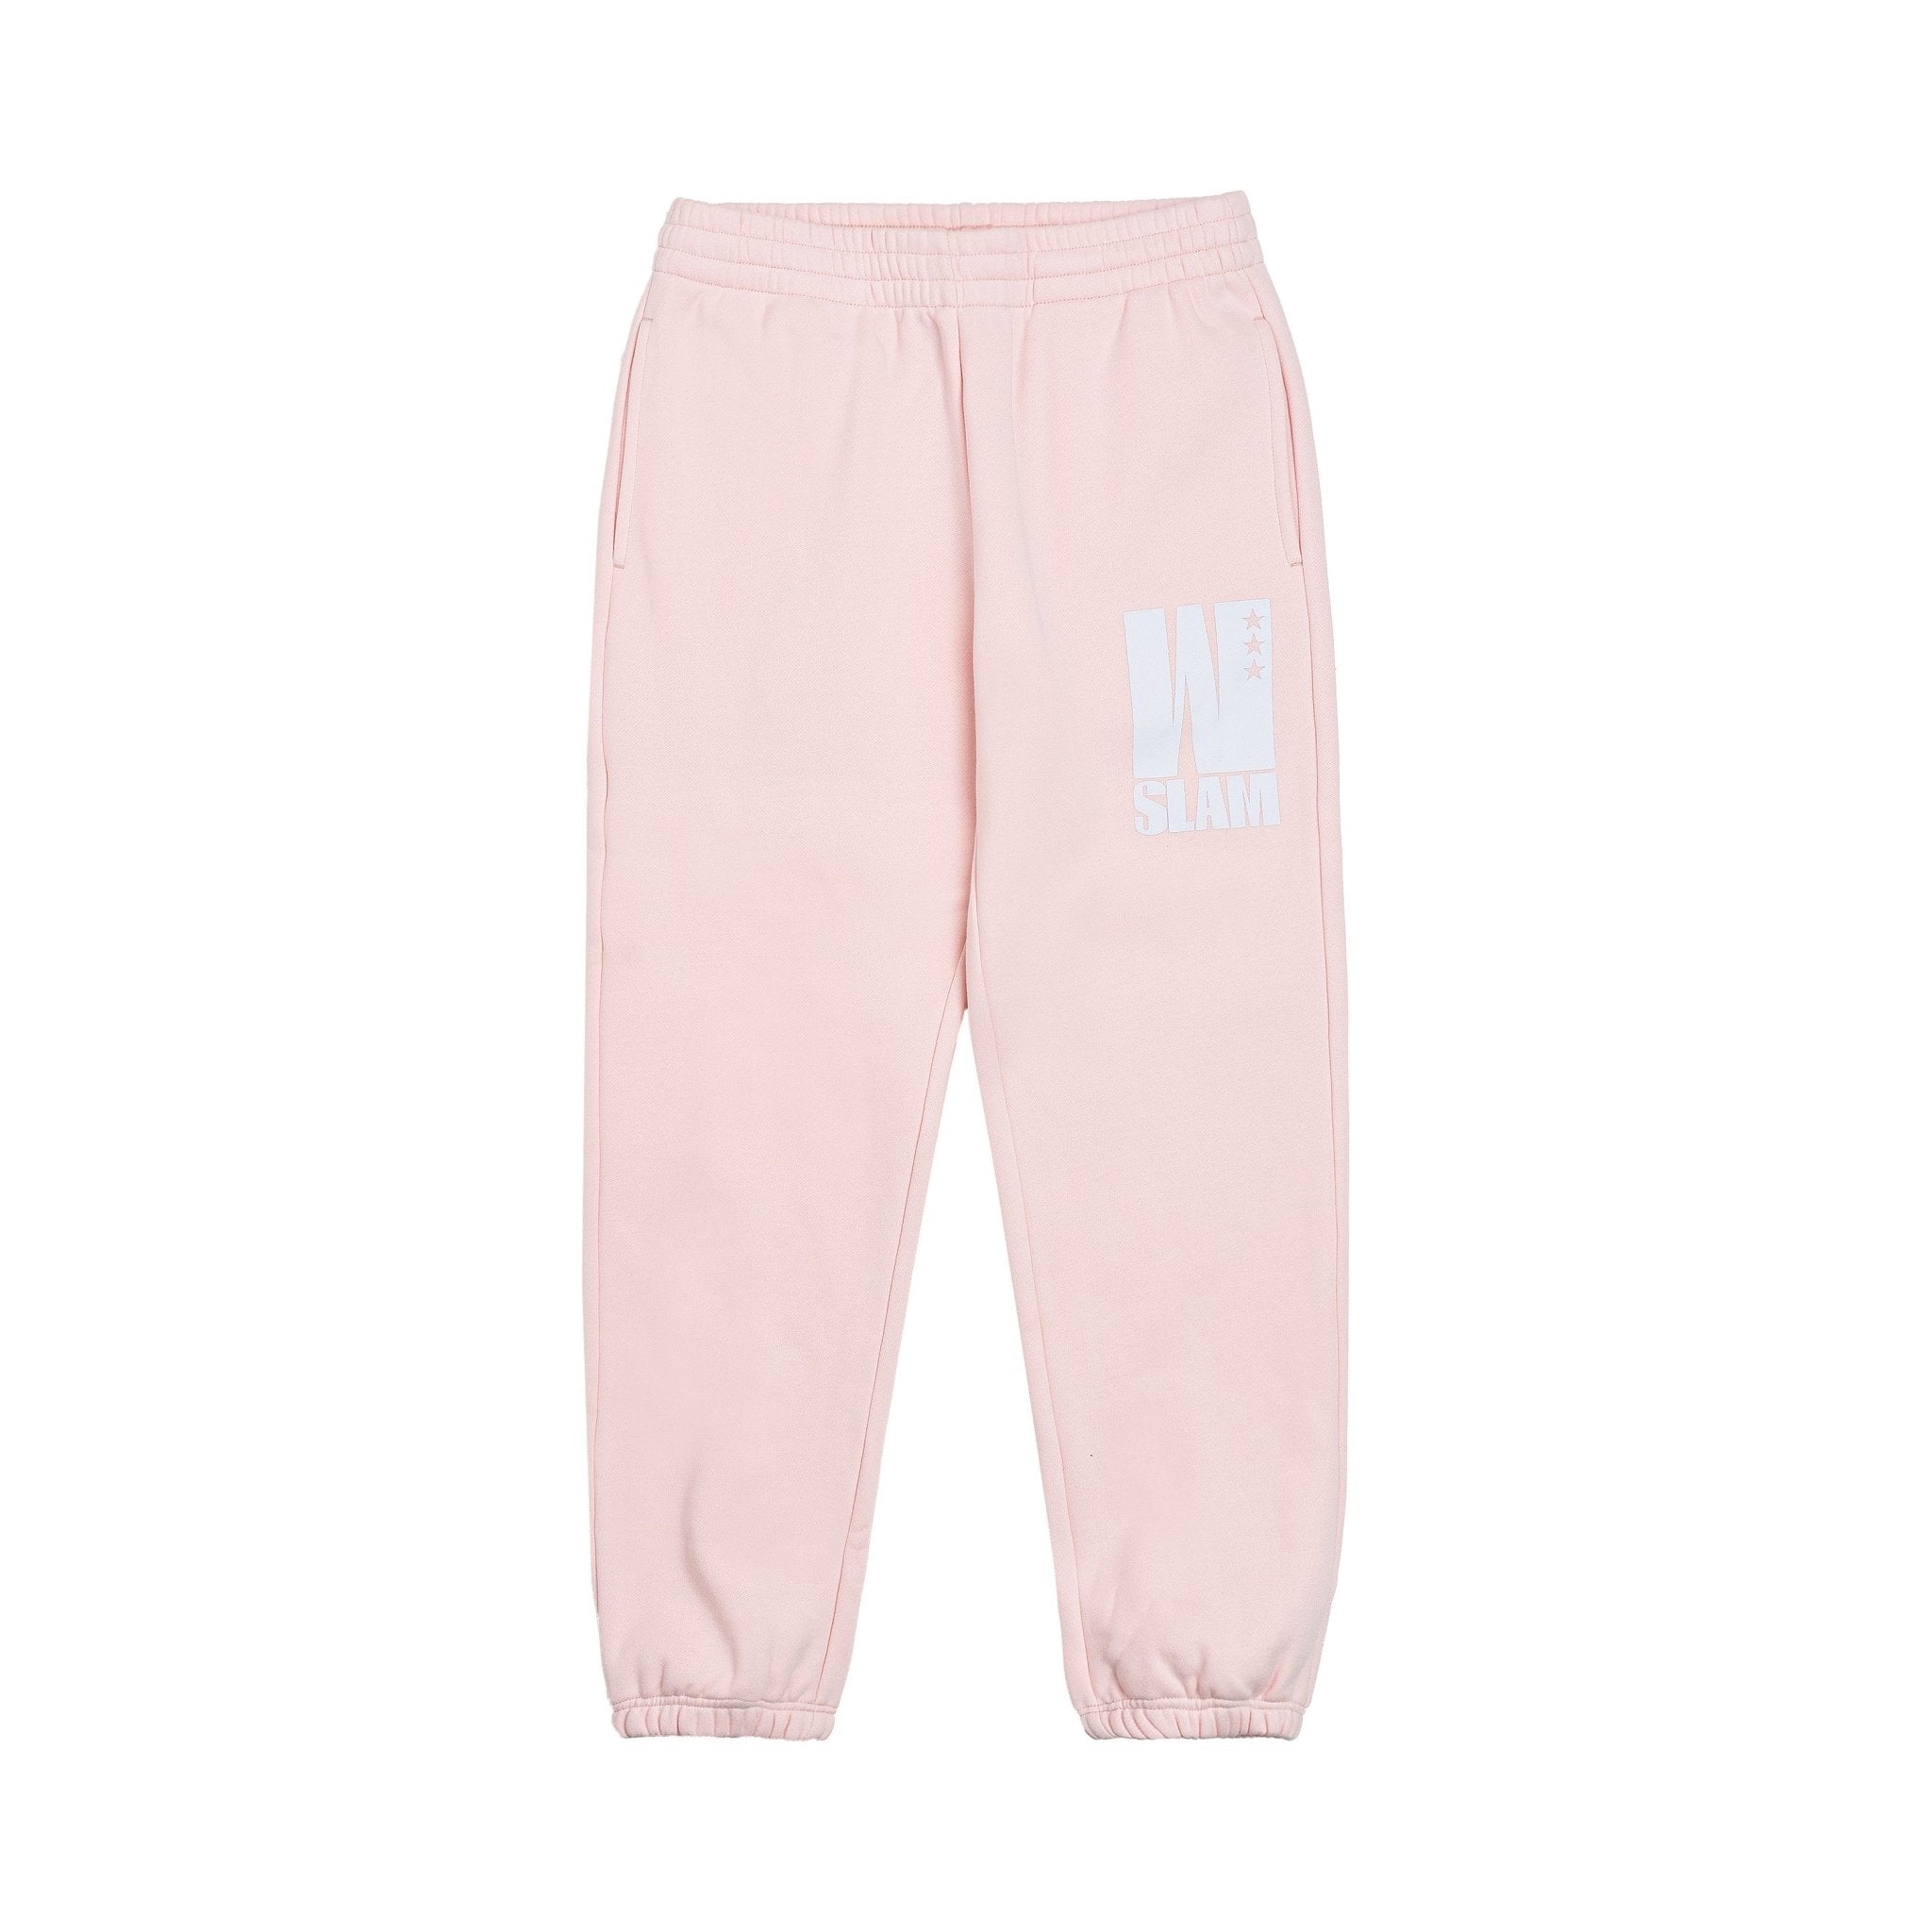 WSLAM Sweatpants - SLAM